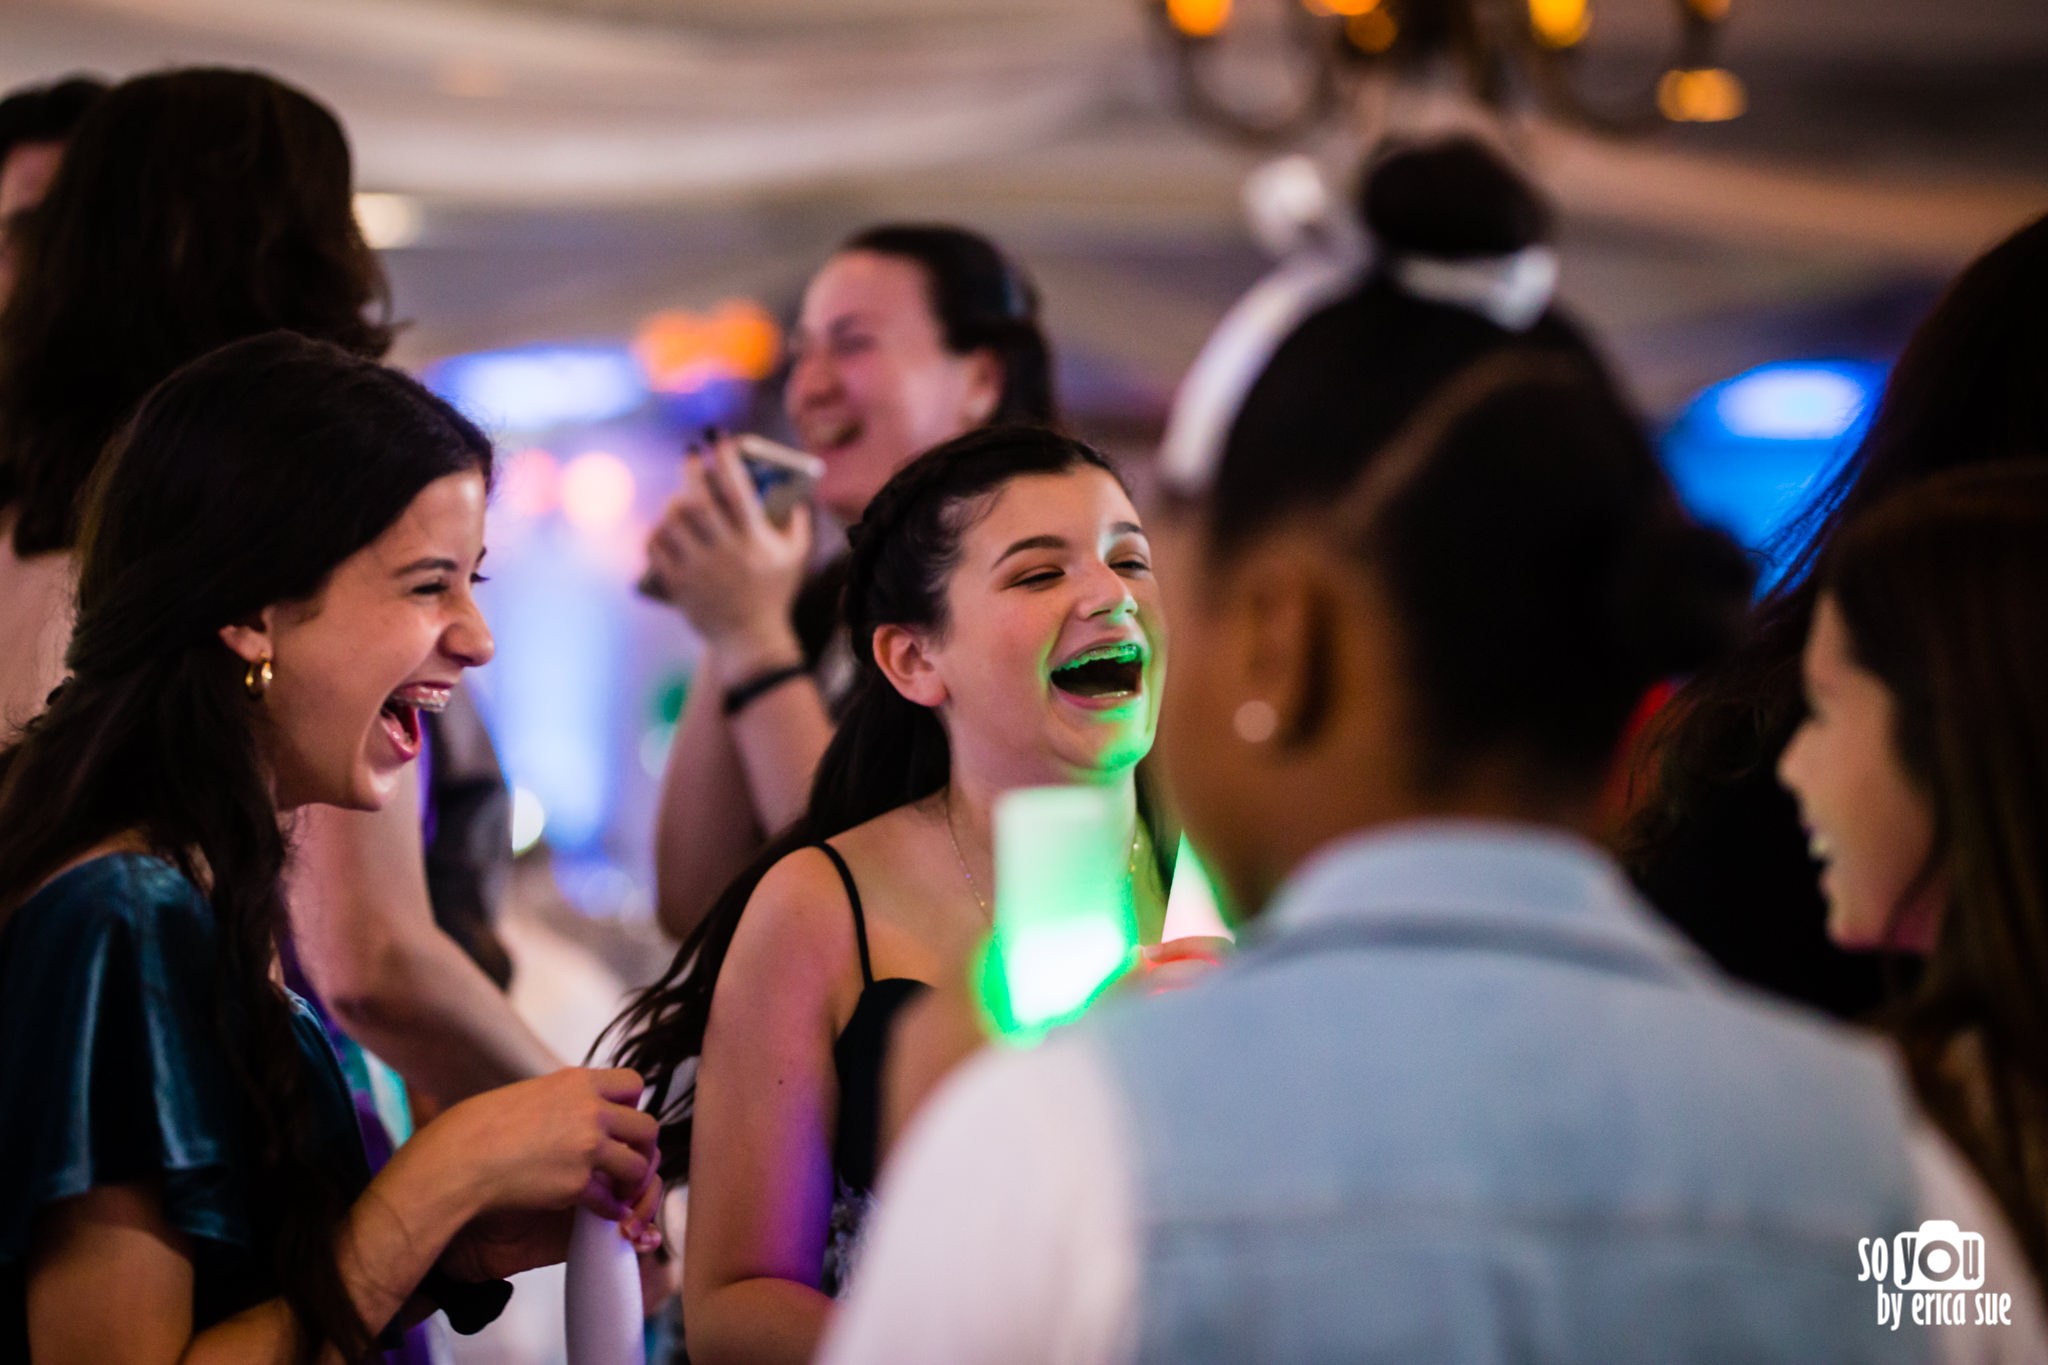 so-you-by-erica-sue-bnai-mitzvah-photographer-delray-beach-golf-club-fl-3629.jpg